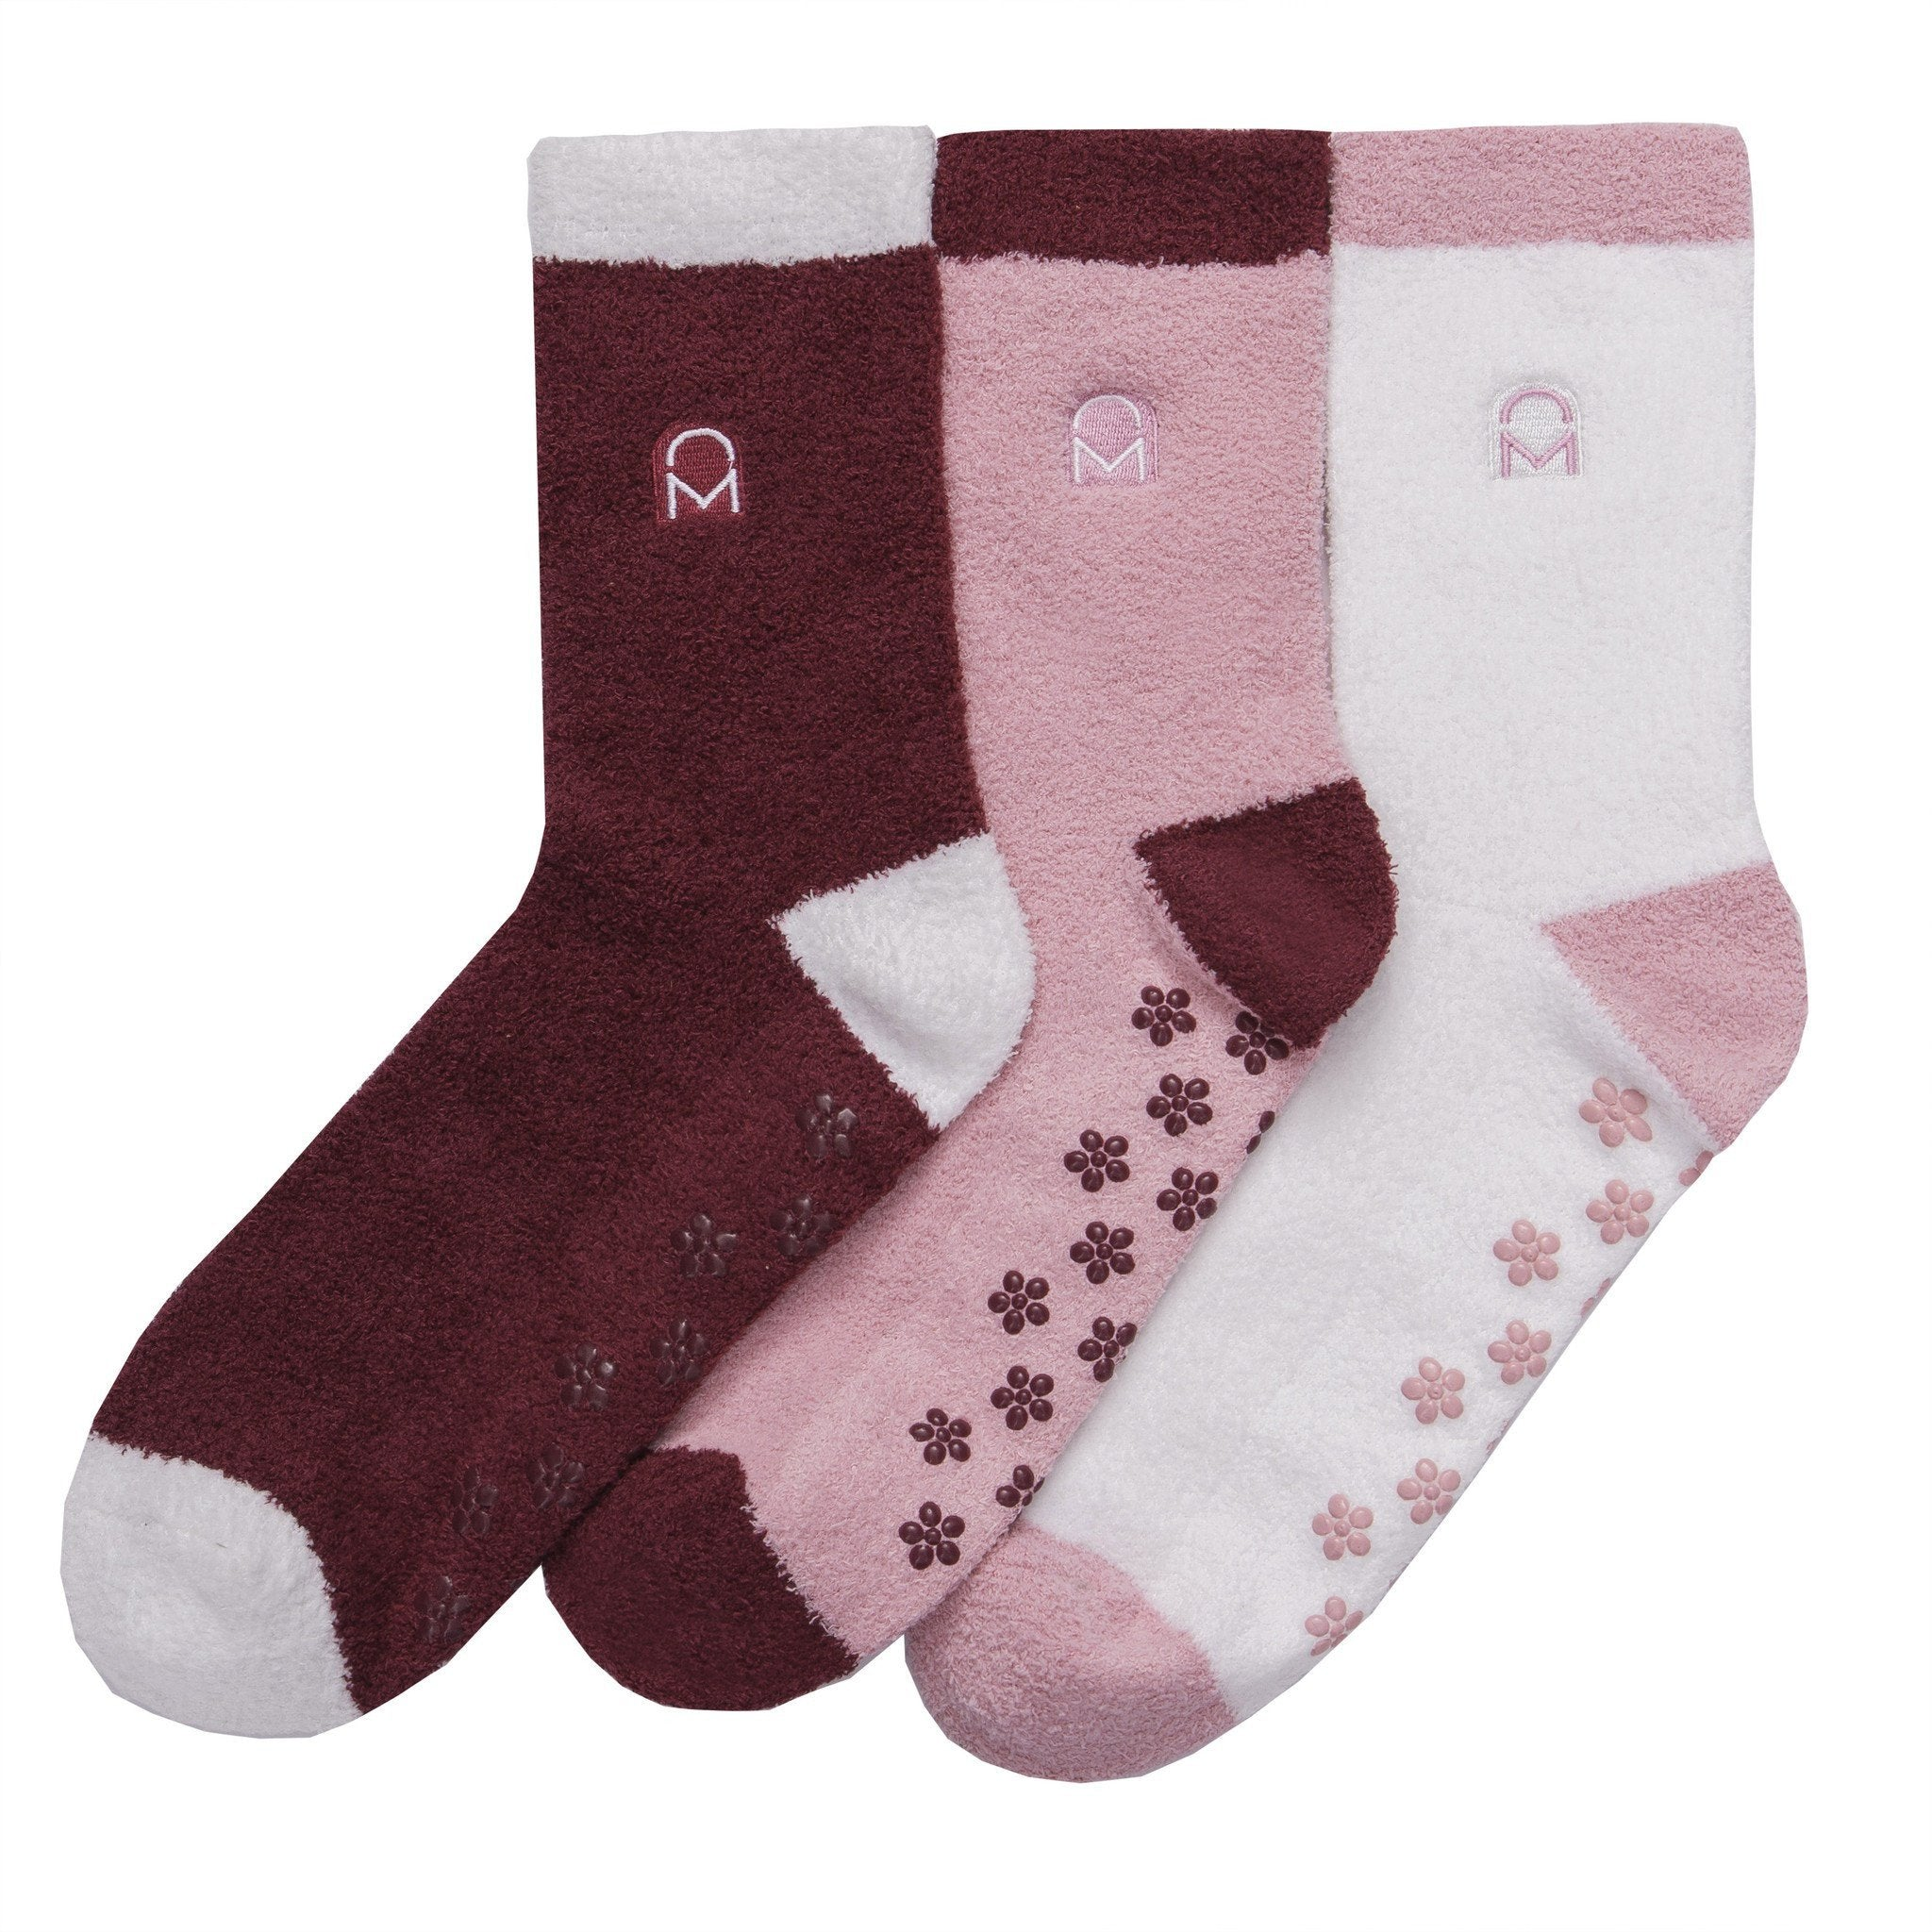 Women's Soft Anti-Skid Micro-Plush Winter Crew Socks - Set C5